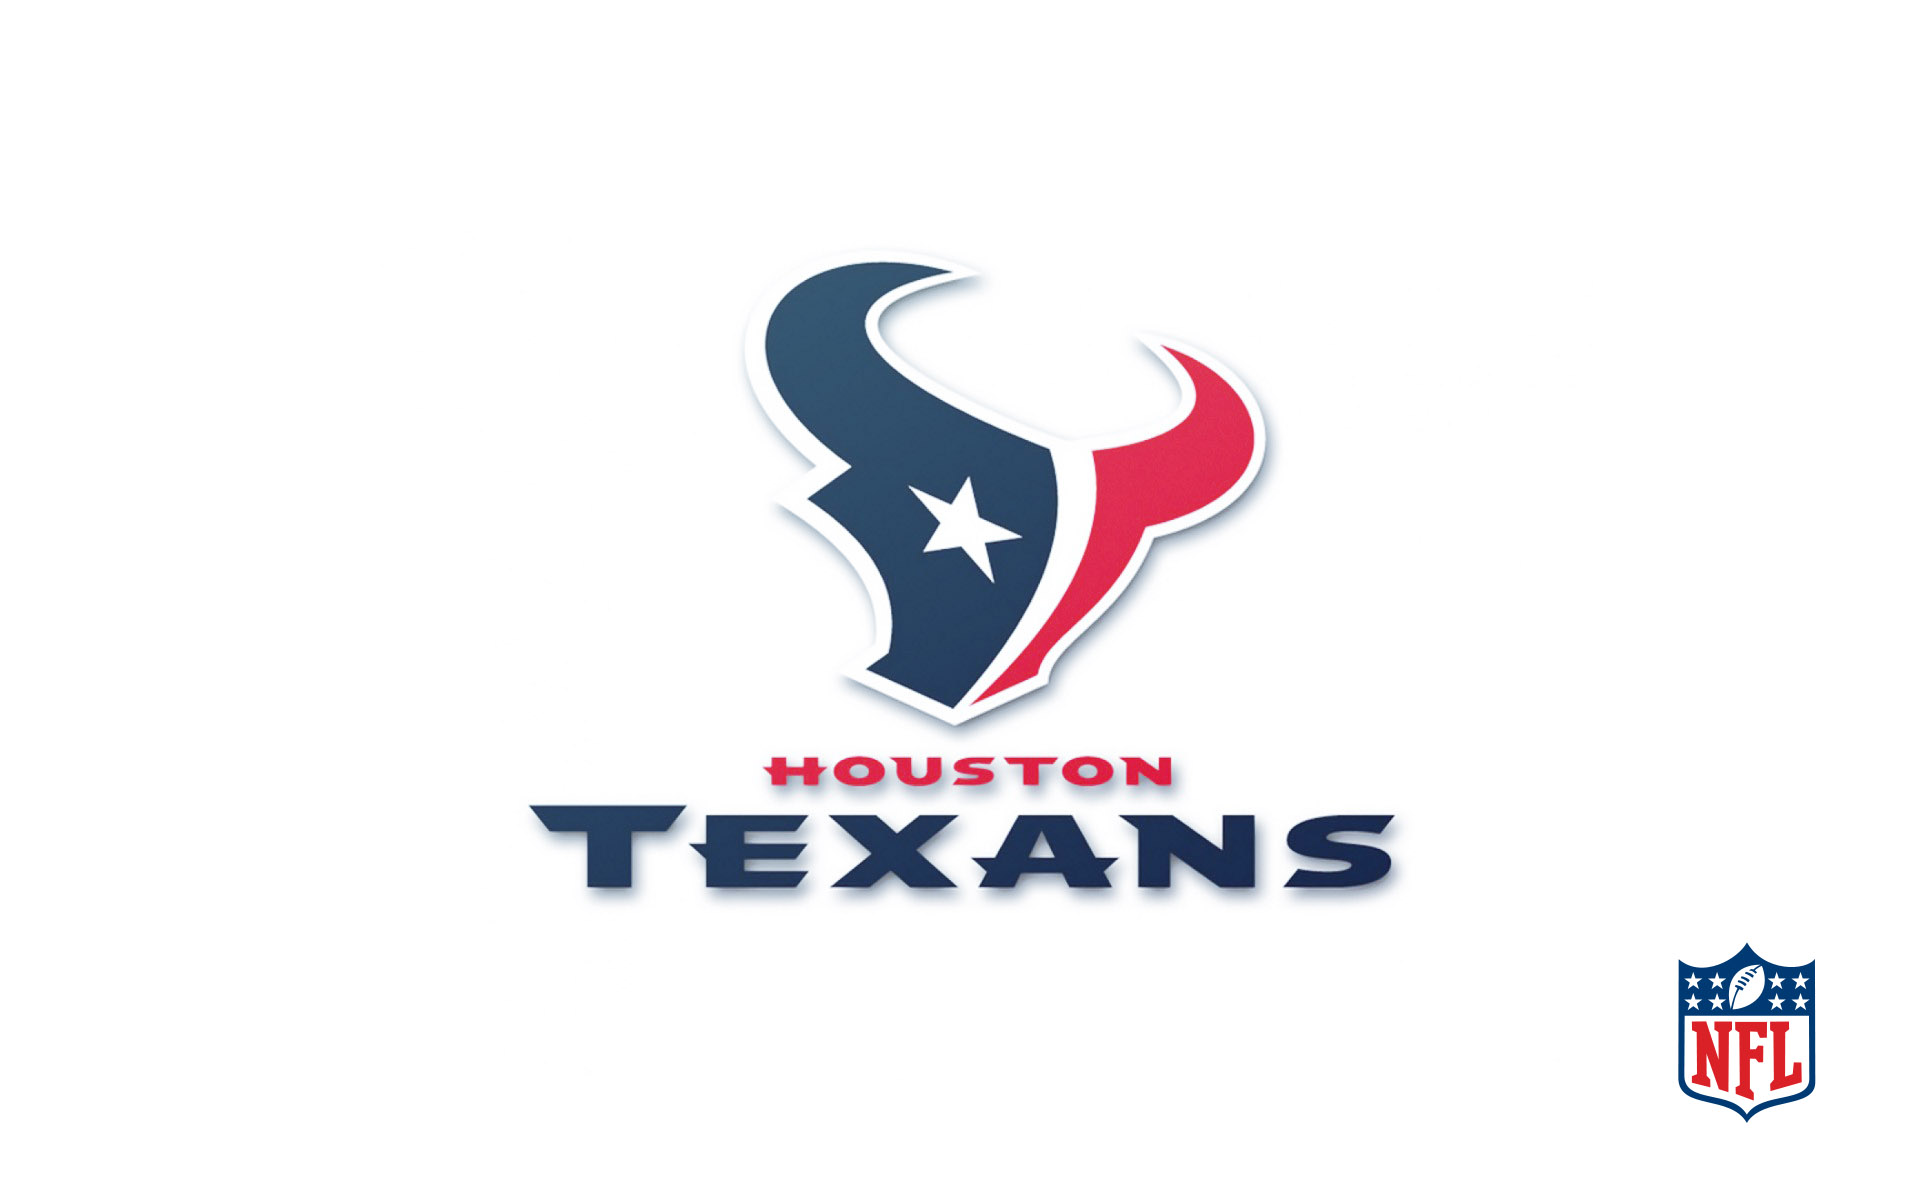 Hd Wallpapers Houston Texans 320 X 480 36 Kb Jpeg HD Wallpapers 1920x1200